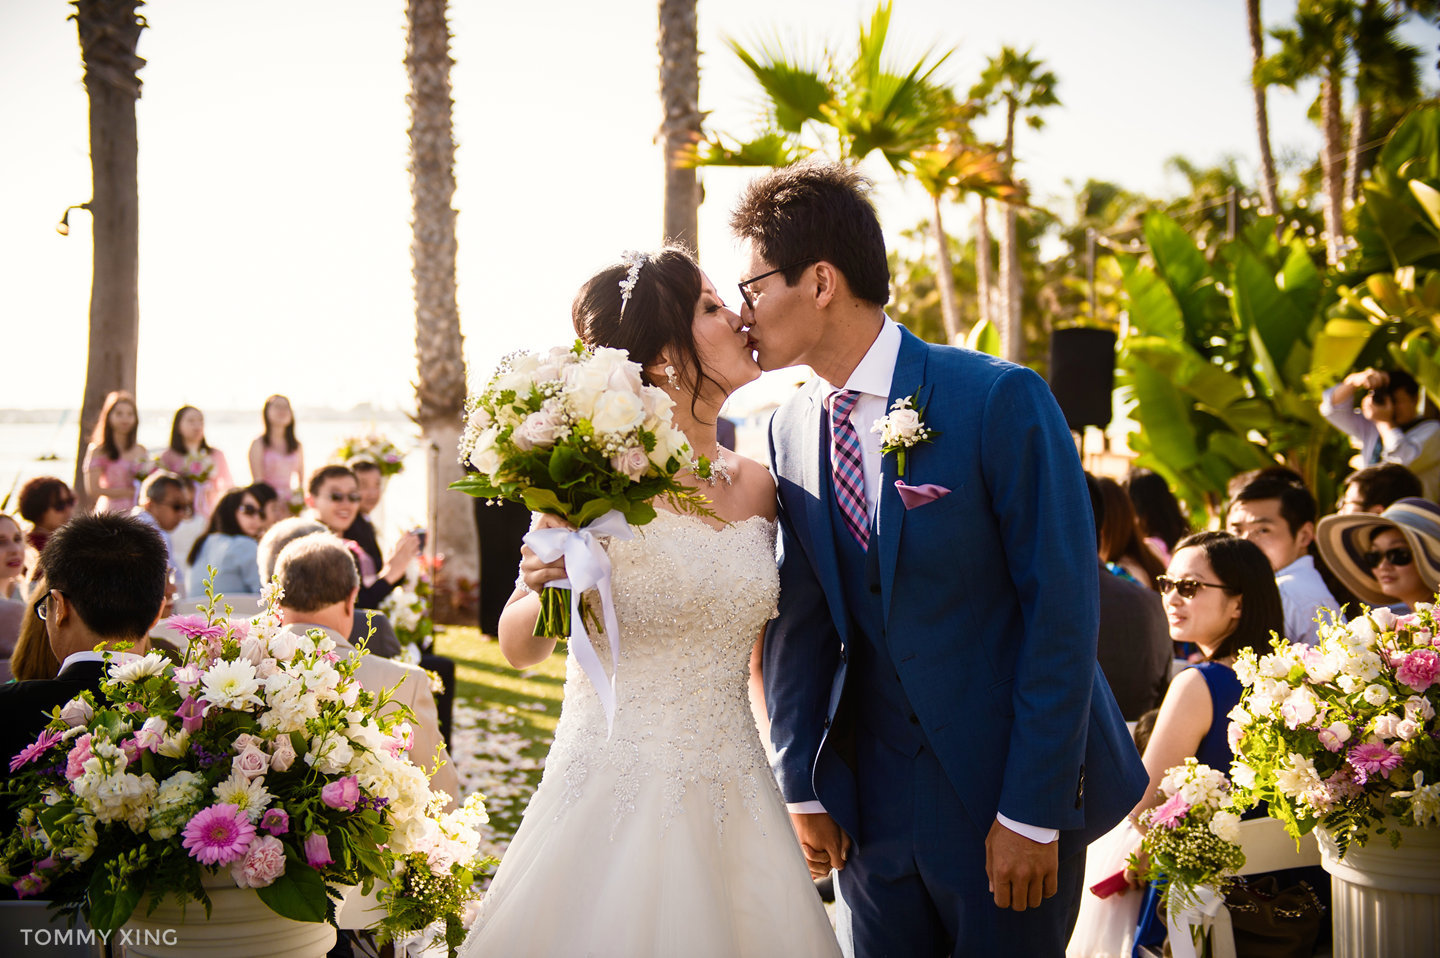 Paradise Point Resort Wedding Xiaolu & Bin San Diego 圣地亚哥婚礼摄影跟拍 Tommy Xing Photography 洛杉矶婚礼婚纱照摄影师 179.jpg